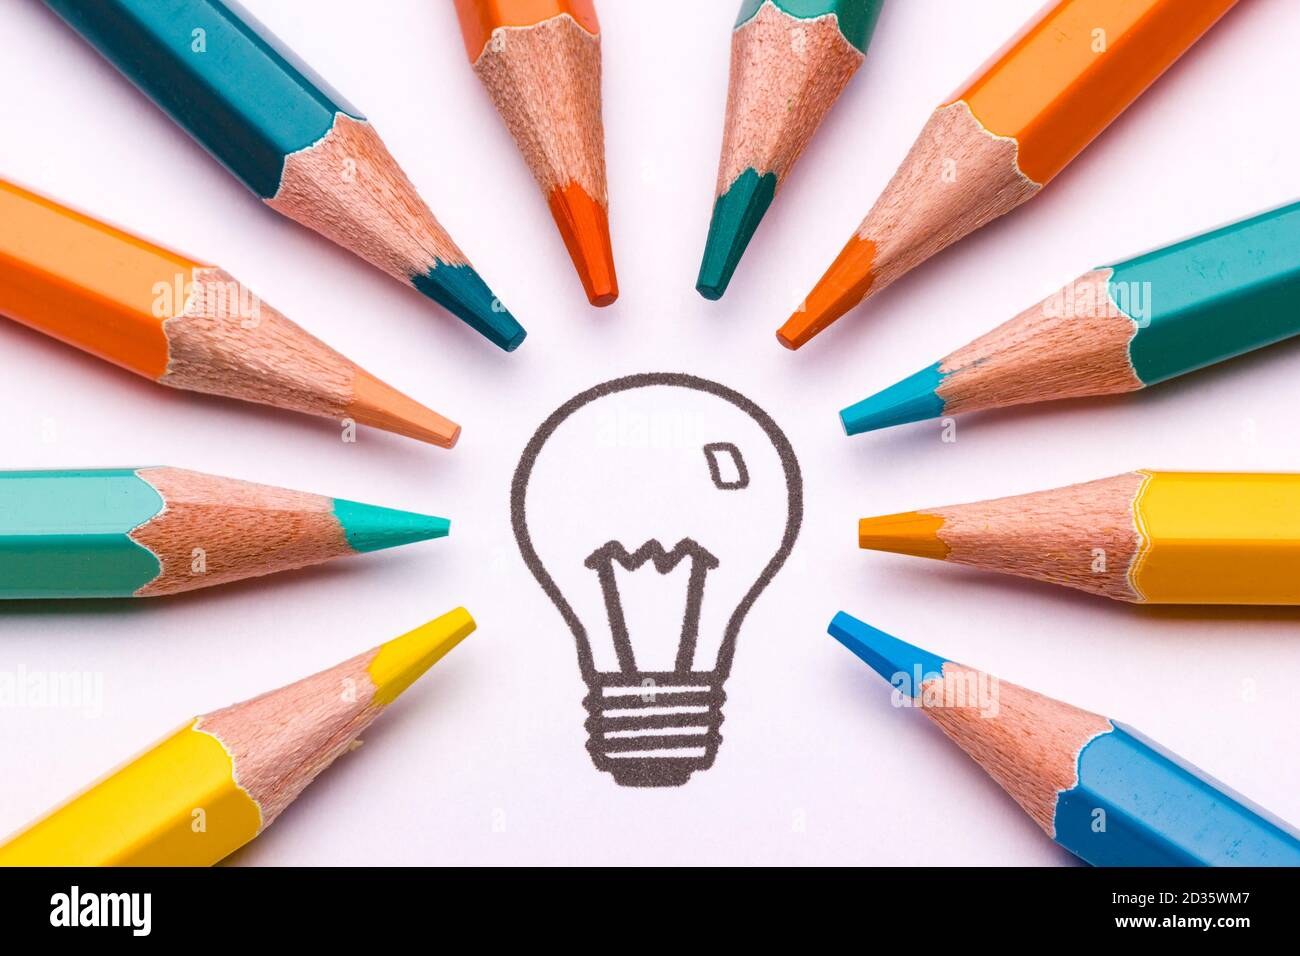 A light bulb surrounded by colour pencils as a symbol of creativity and art Stock Photo